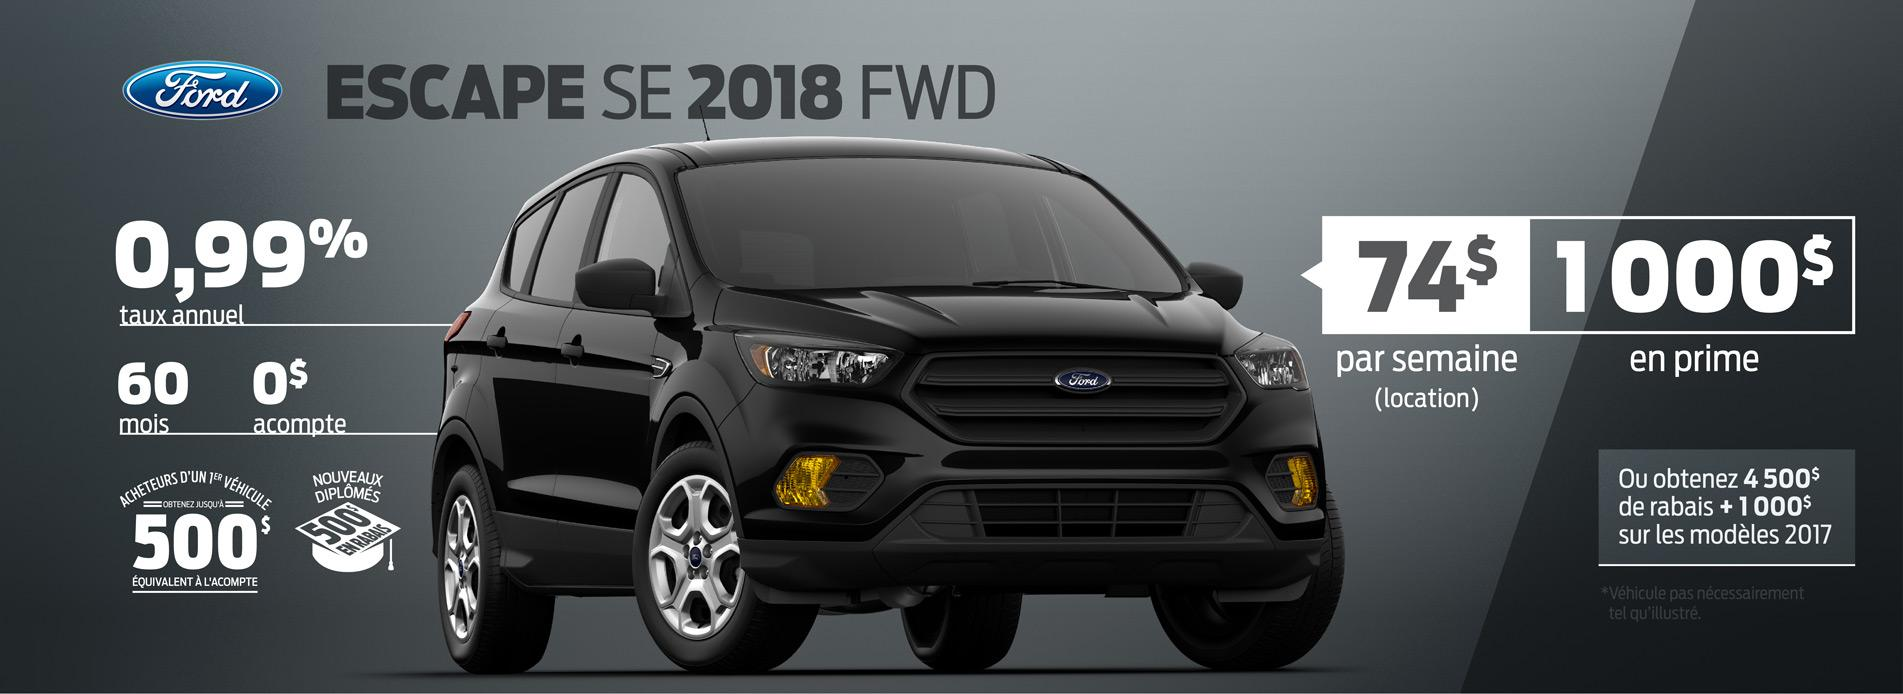 ford escape 2018 offre buckingham